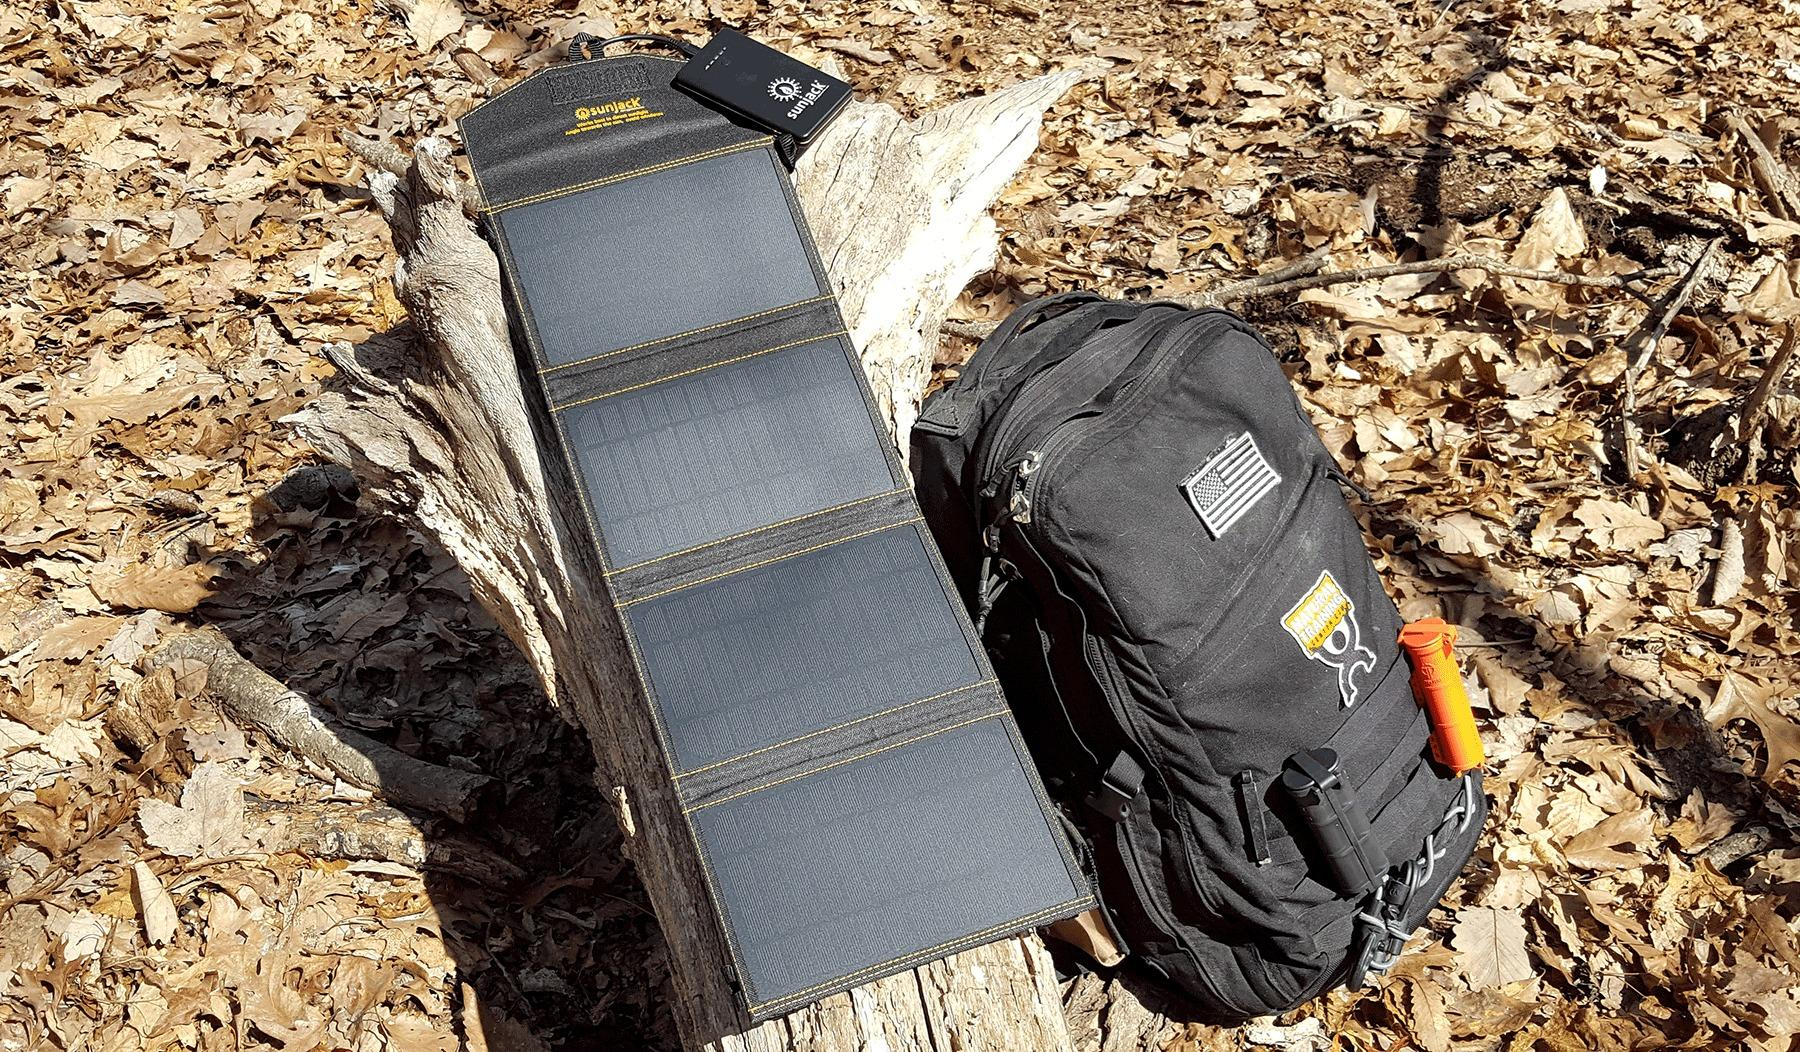 SunJack Solar Charger - Keeps My Gadgets Charged During Extended Days In The Field